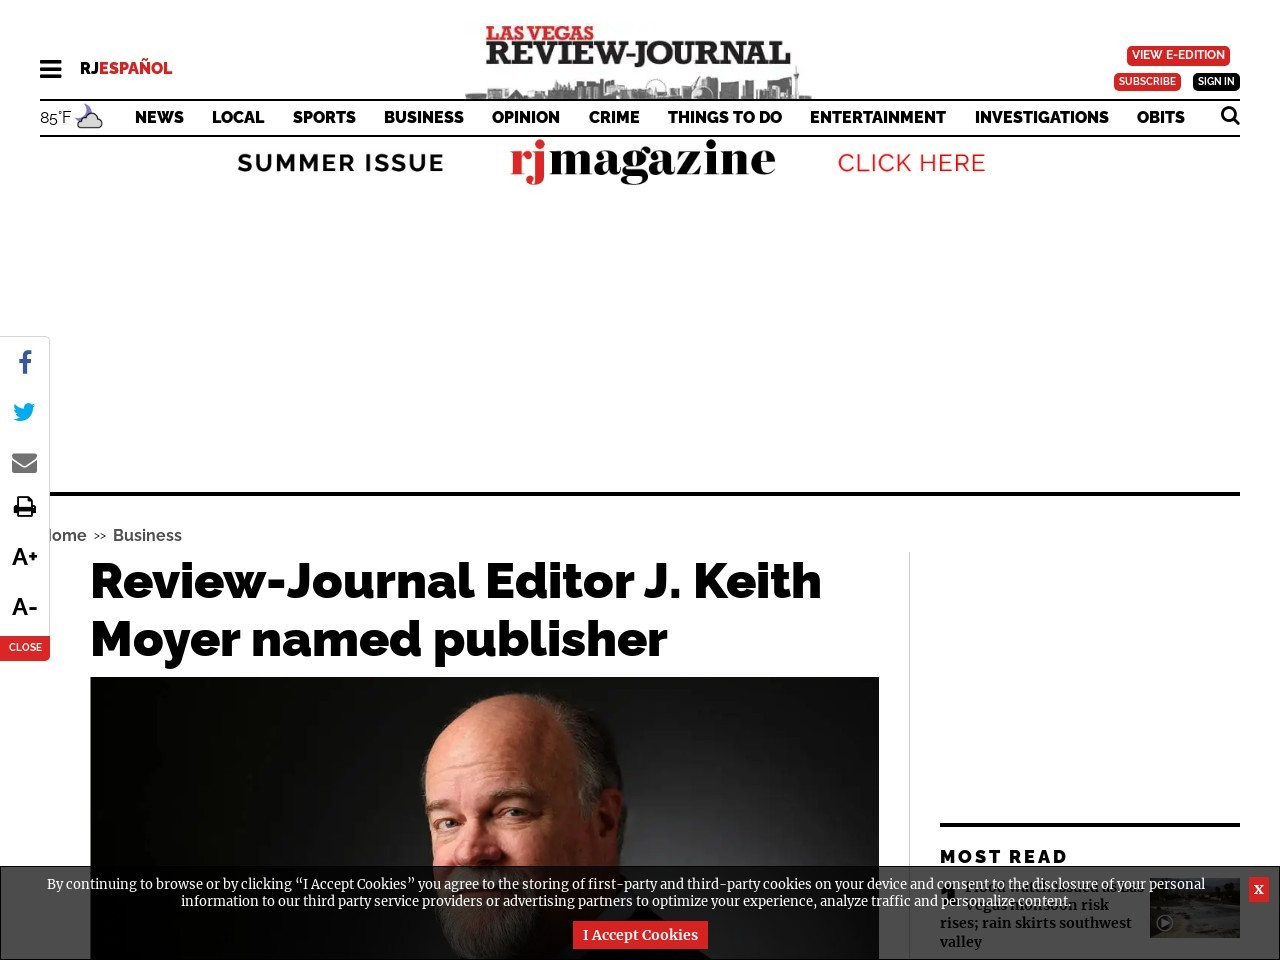 Review-Journal Editor J. Keith Moyer named publisher